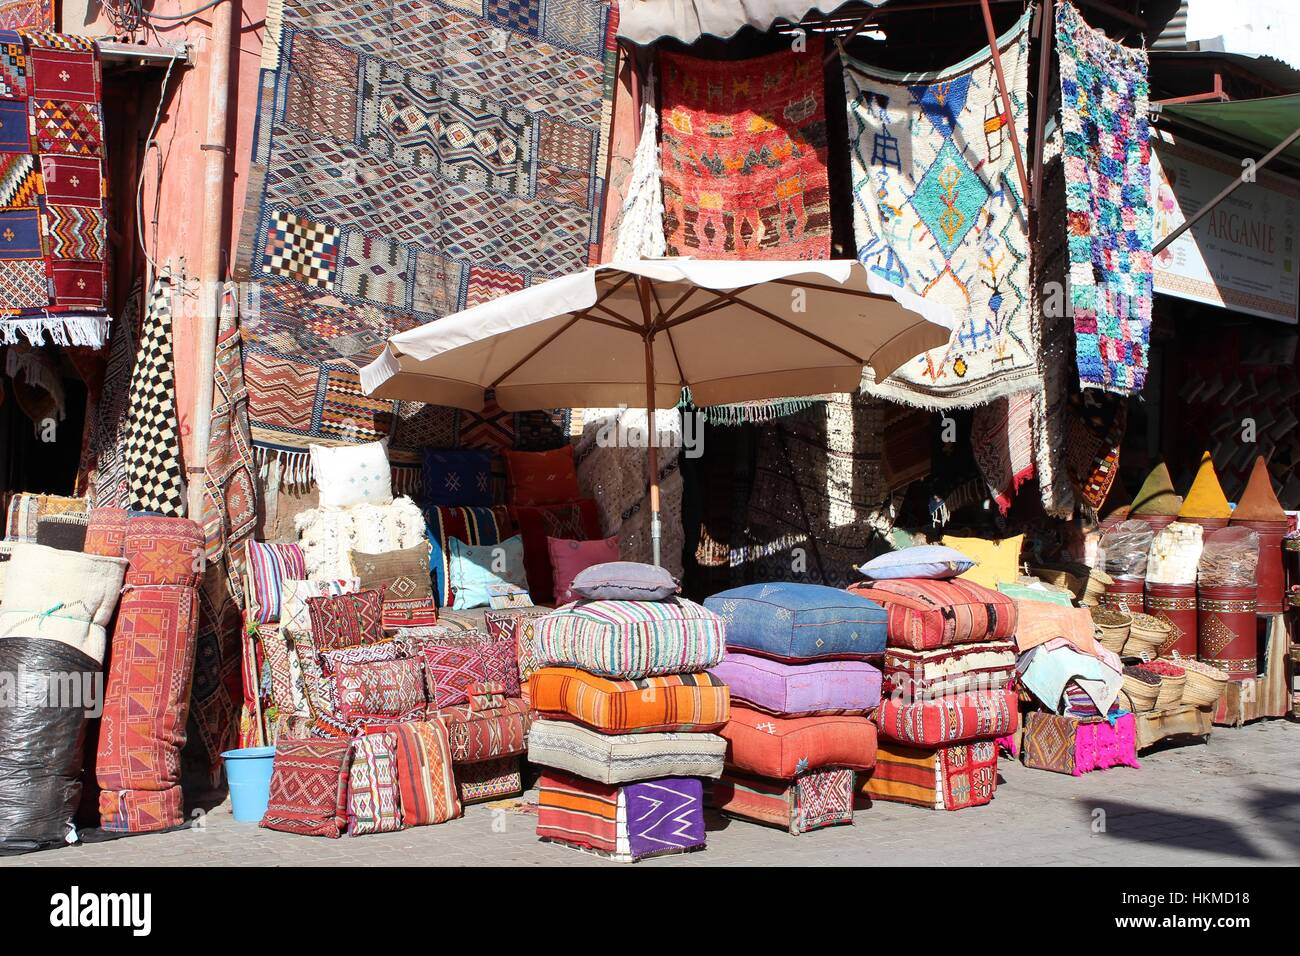 In The Bazaar Markets Of Marrakech Vintage Rugs And